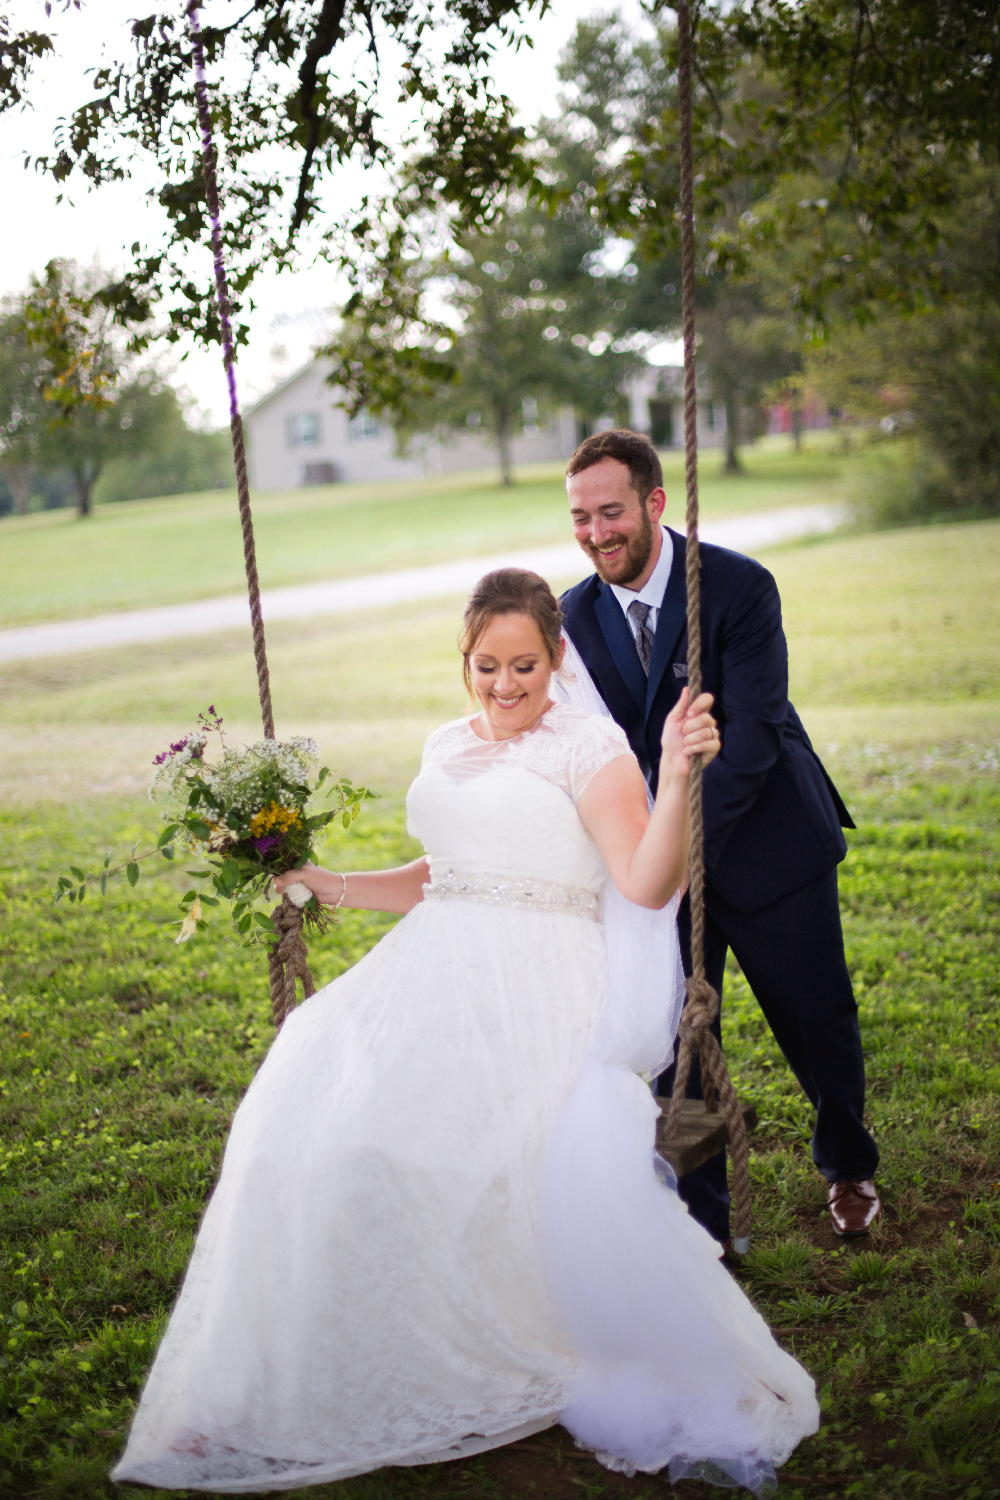 groom pushing bride on swing.jpg